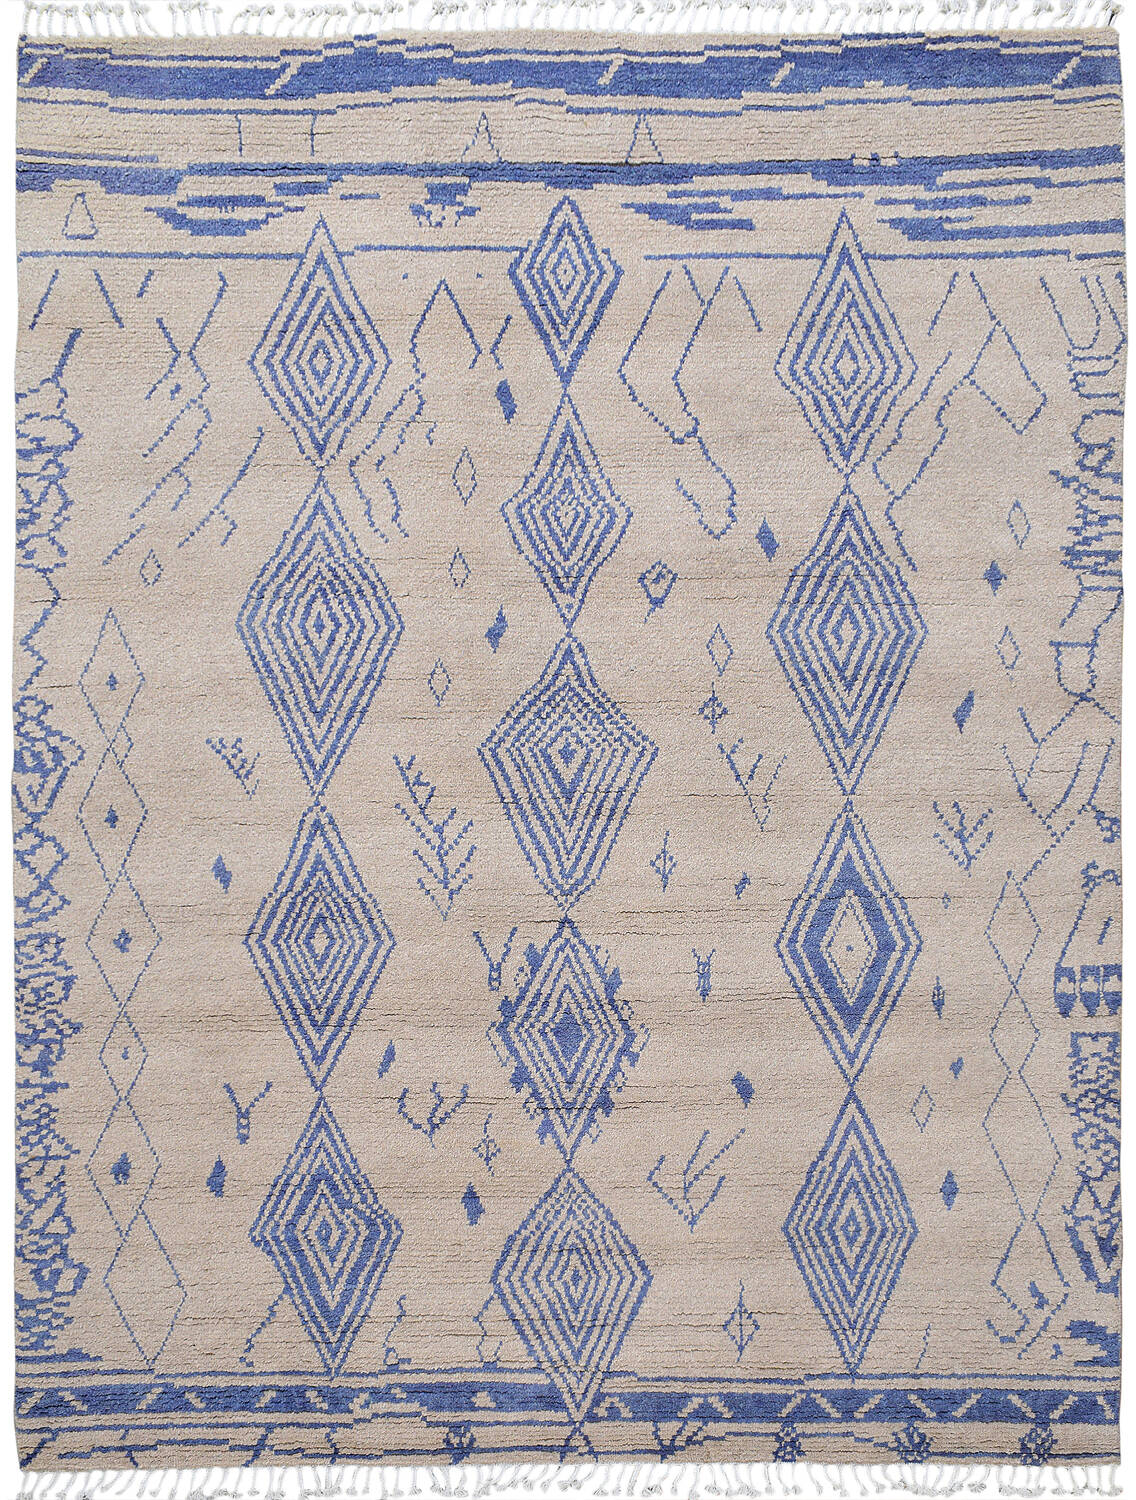 Tribal South-Western Moroccan Area Rug 8x10 image 1